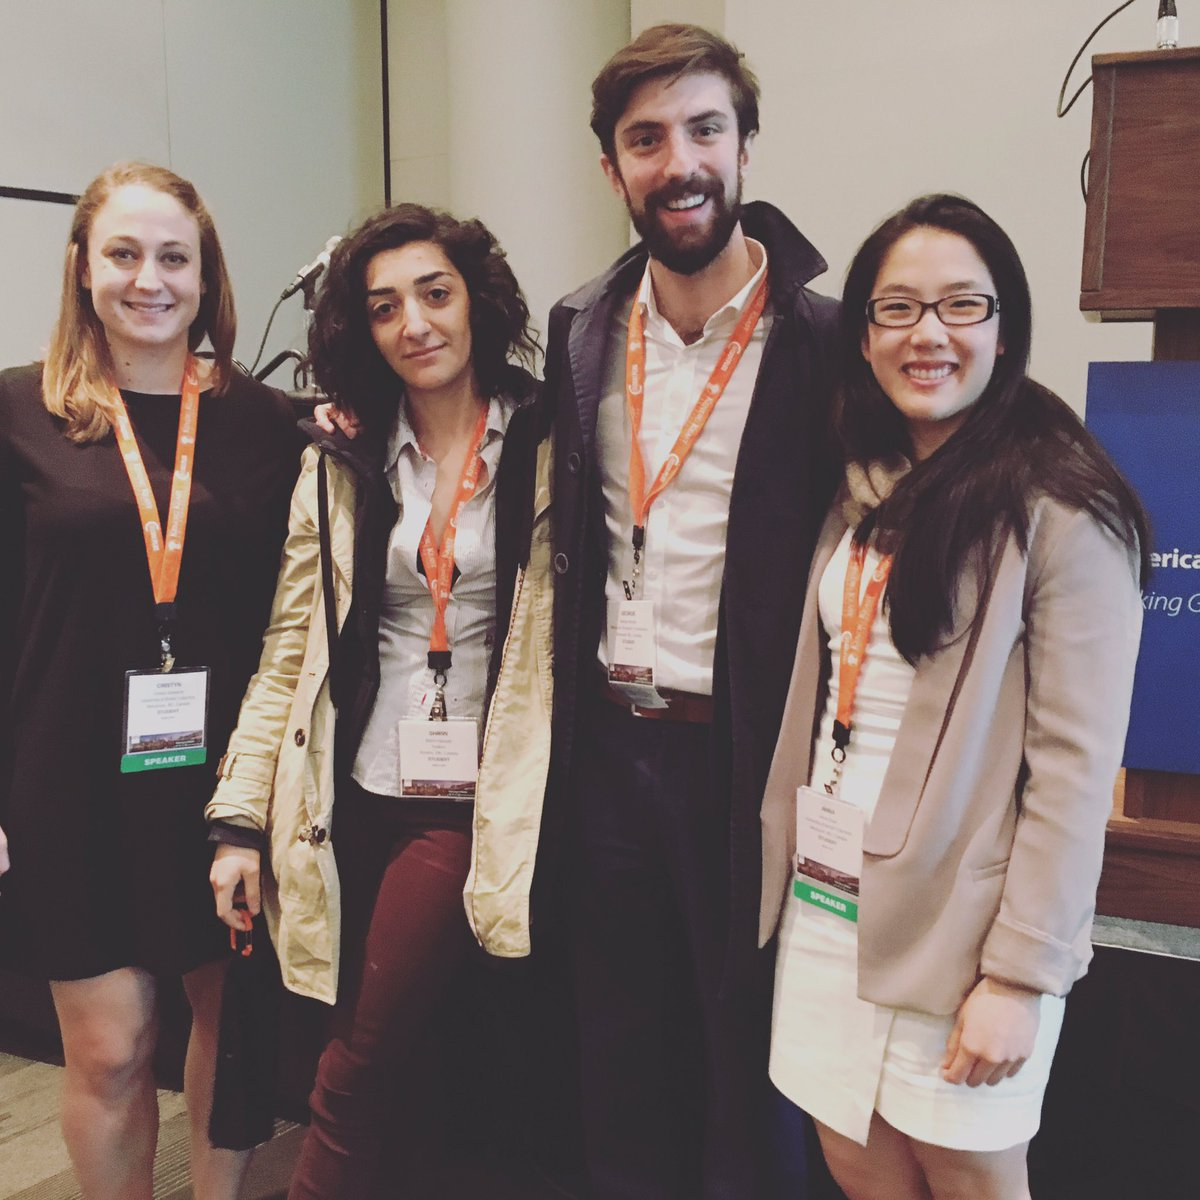 Climate Migrants and Refugees Project Team Members (L to R: Cristyn, Shirin, George, and Anna)